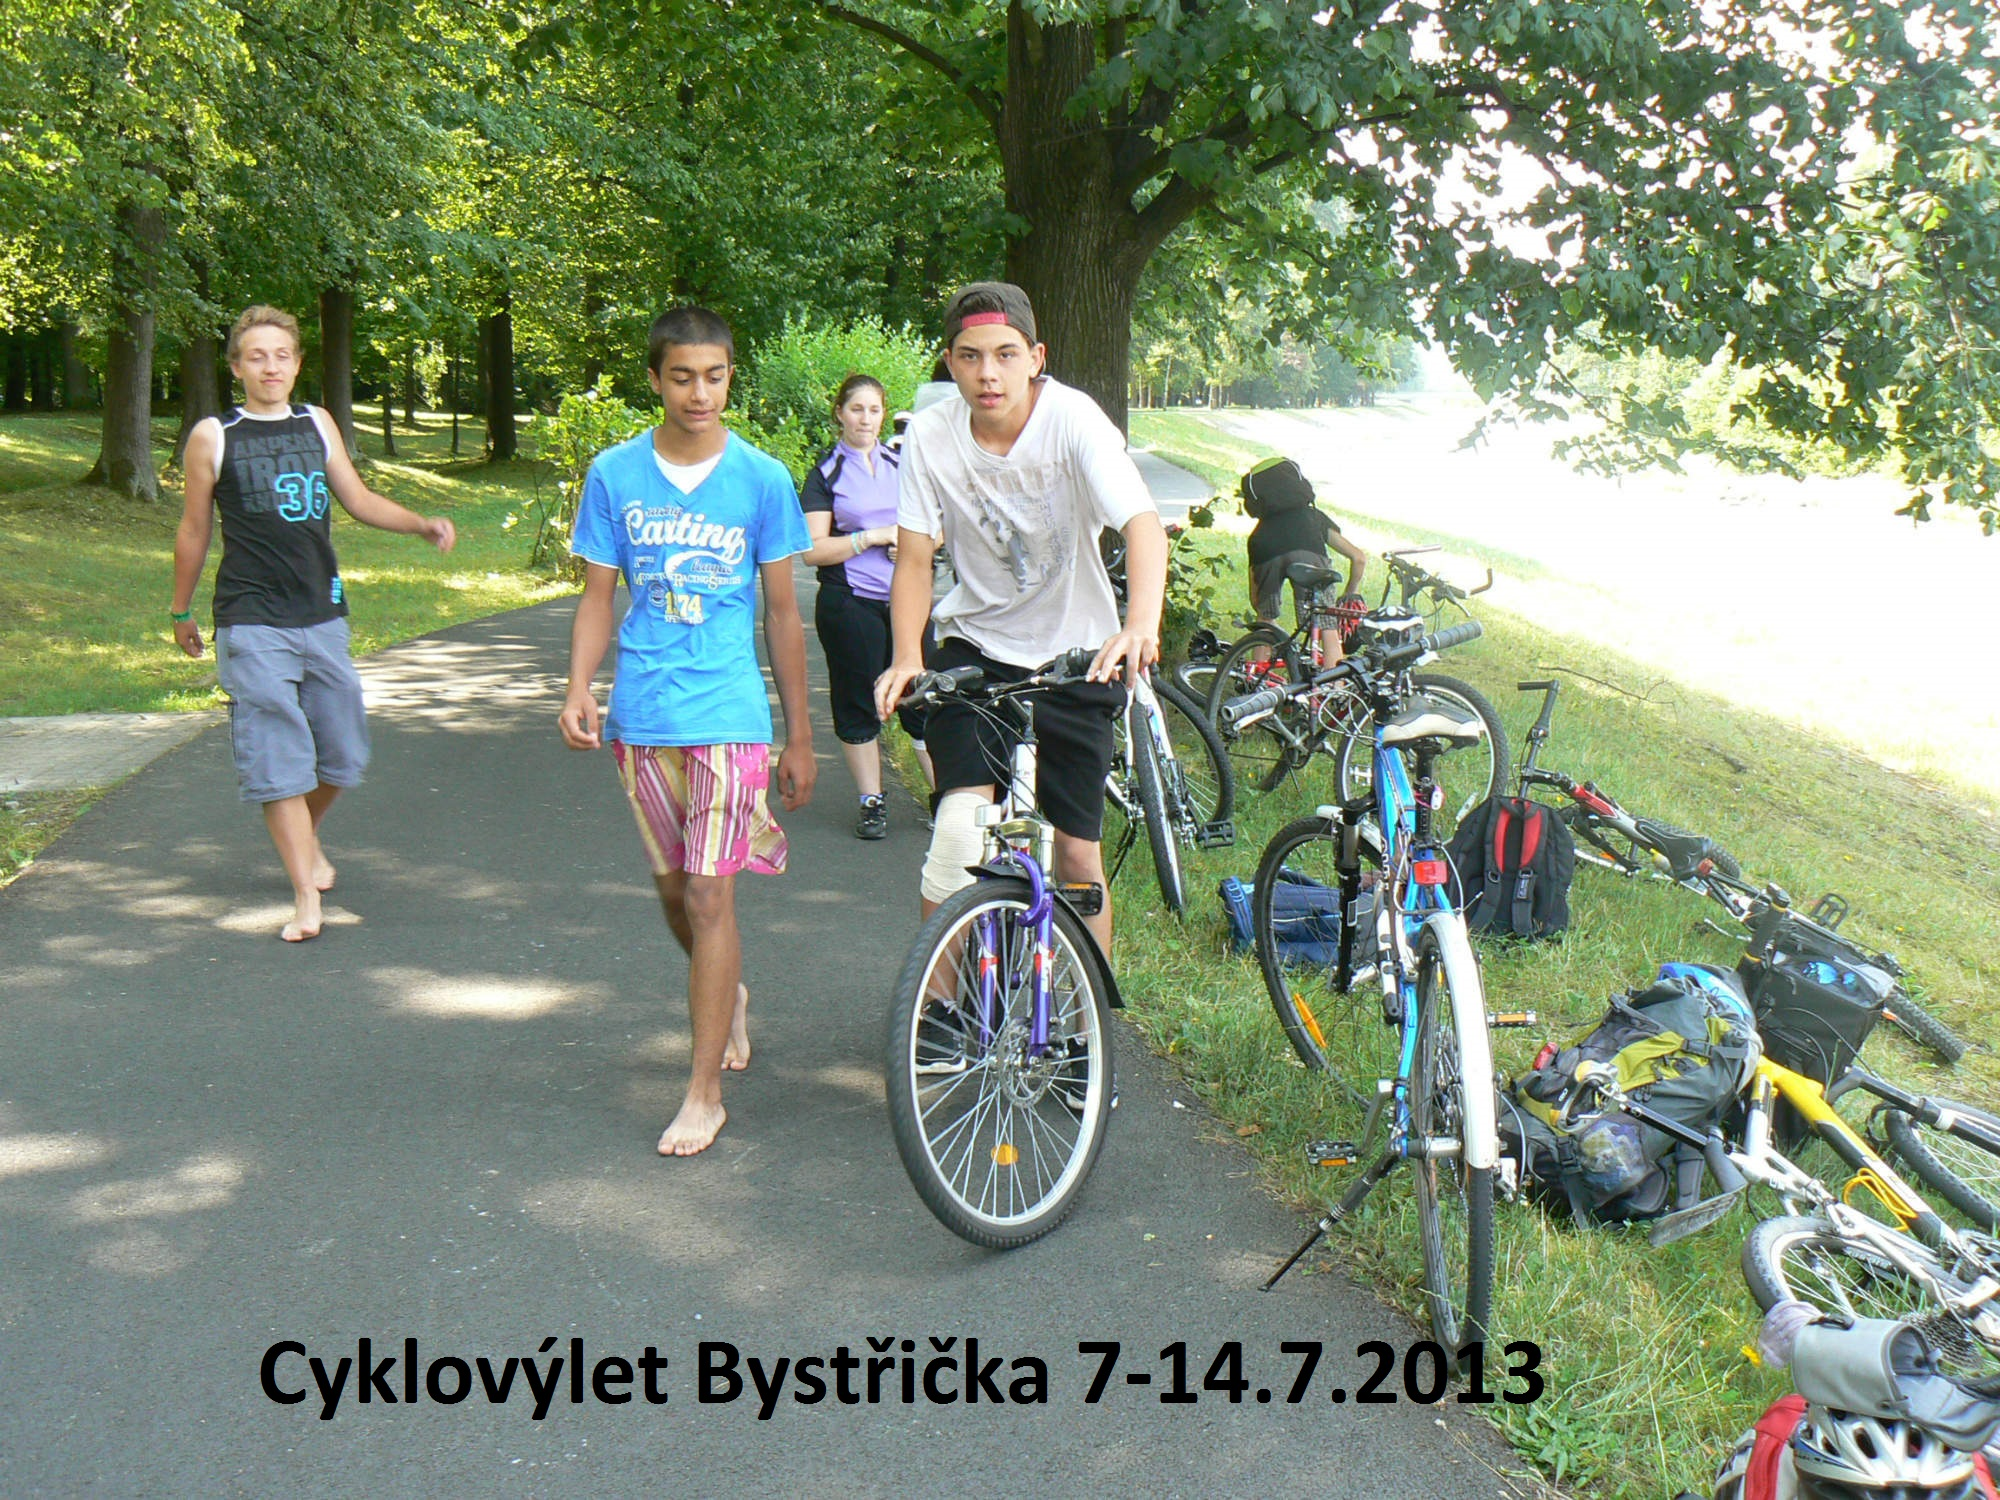 Cyklo_Bystrice_7.2013